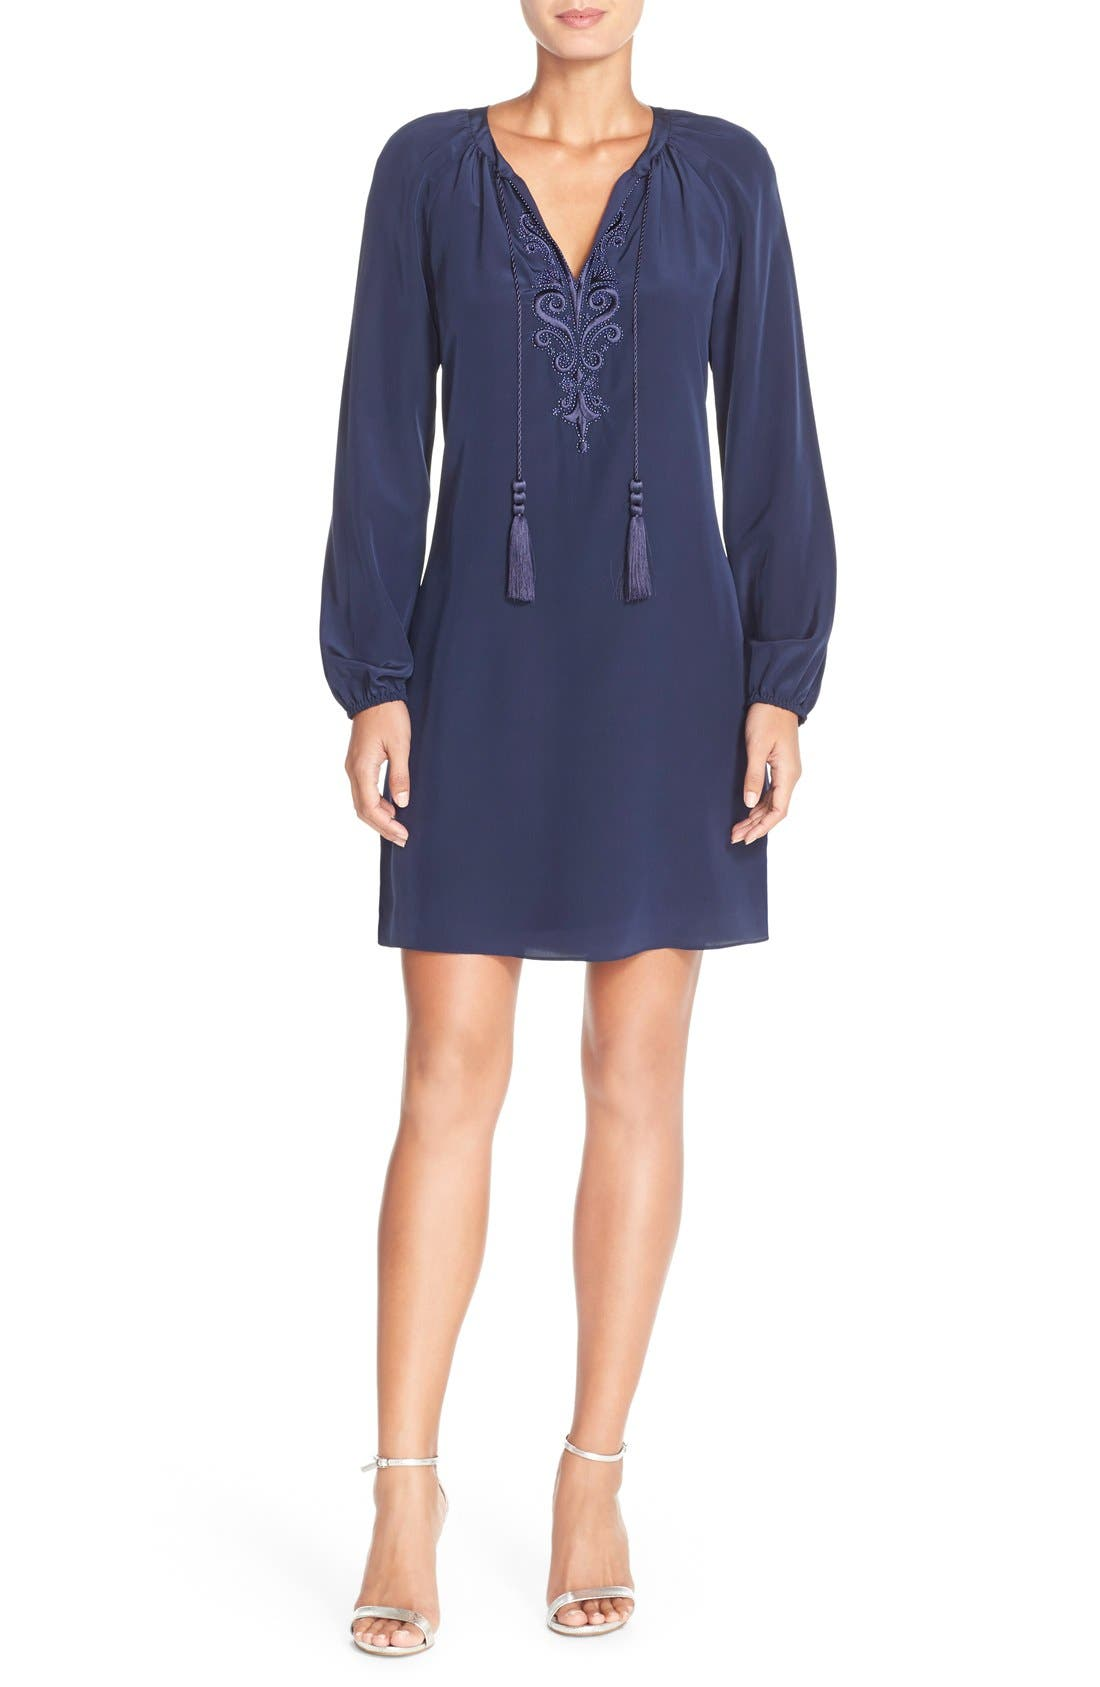 Alternate Image 1 Selected - Lilly Pulitzer® 'Roslyn' Embroidered Silk Tunic Dress